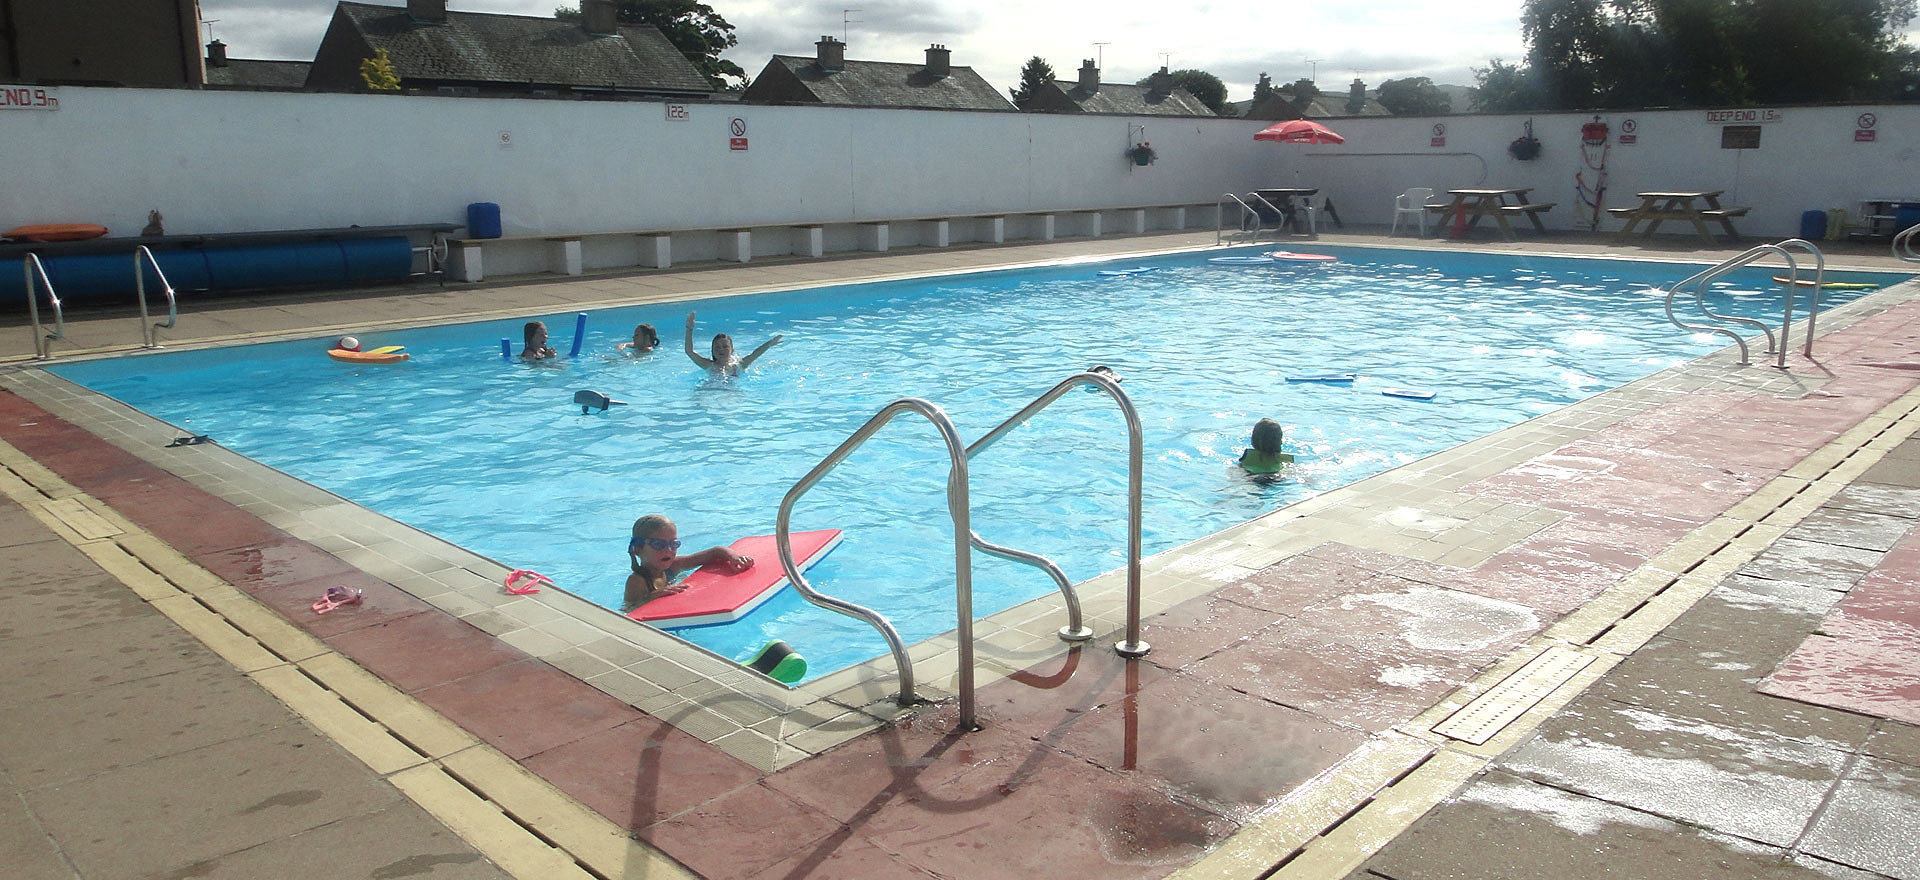 Welcome to shap outdoor swimming pool kids having fun for Outdoor pools open